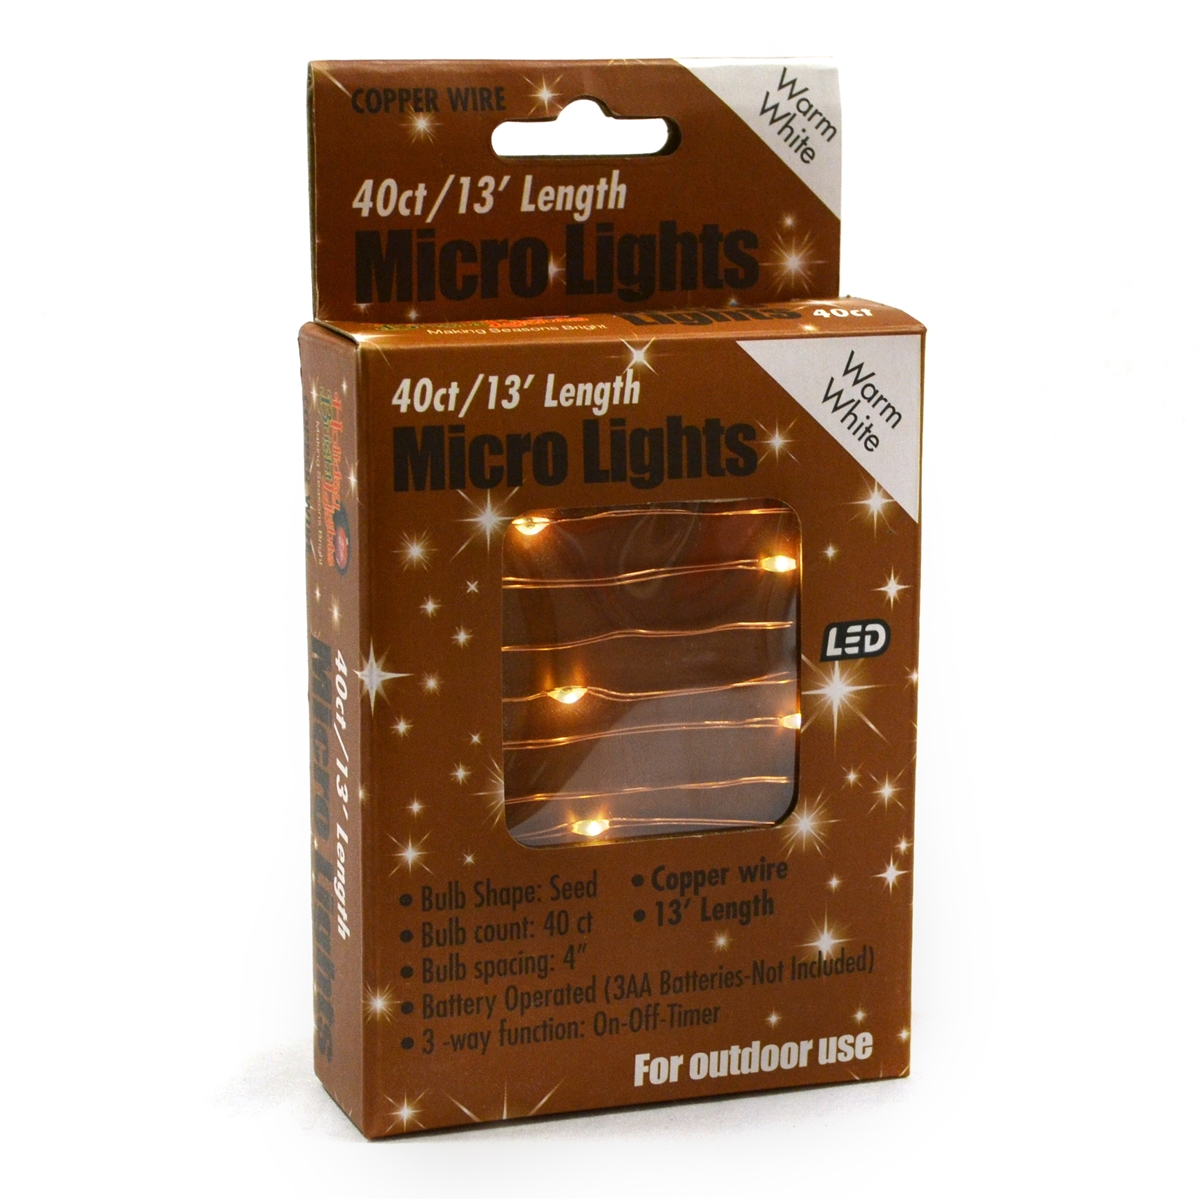 13\' Micro Lights LED 40 - Copper Wire/WW - (Qty 24)